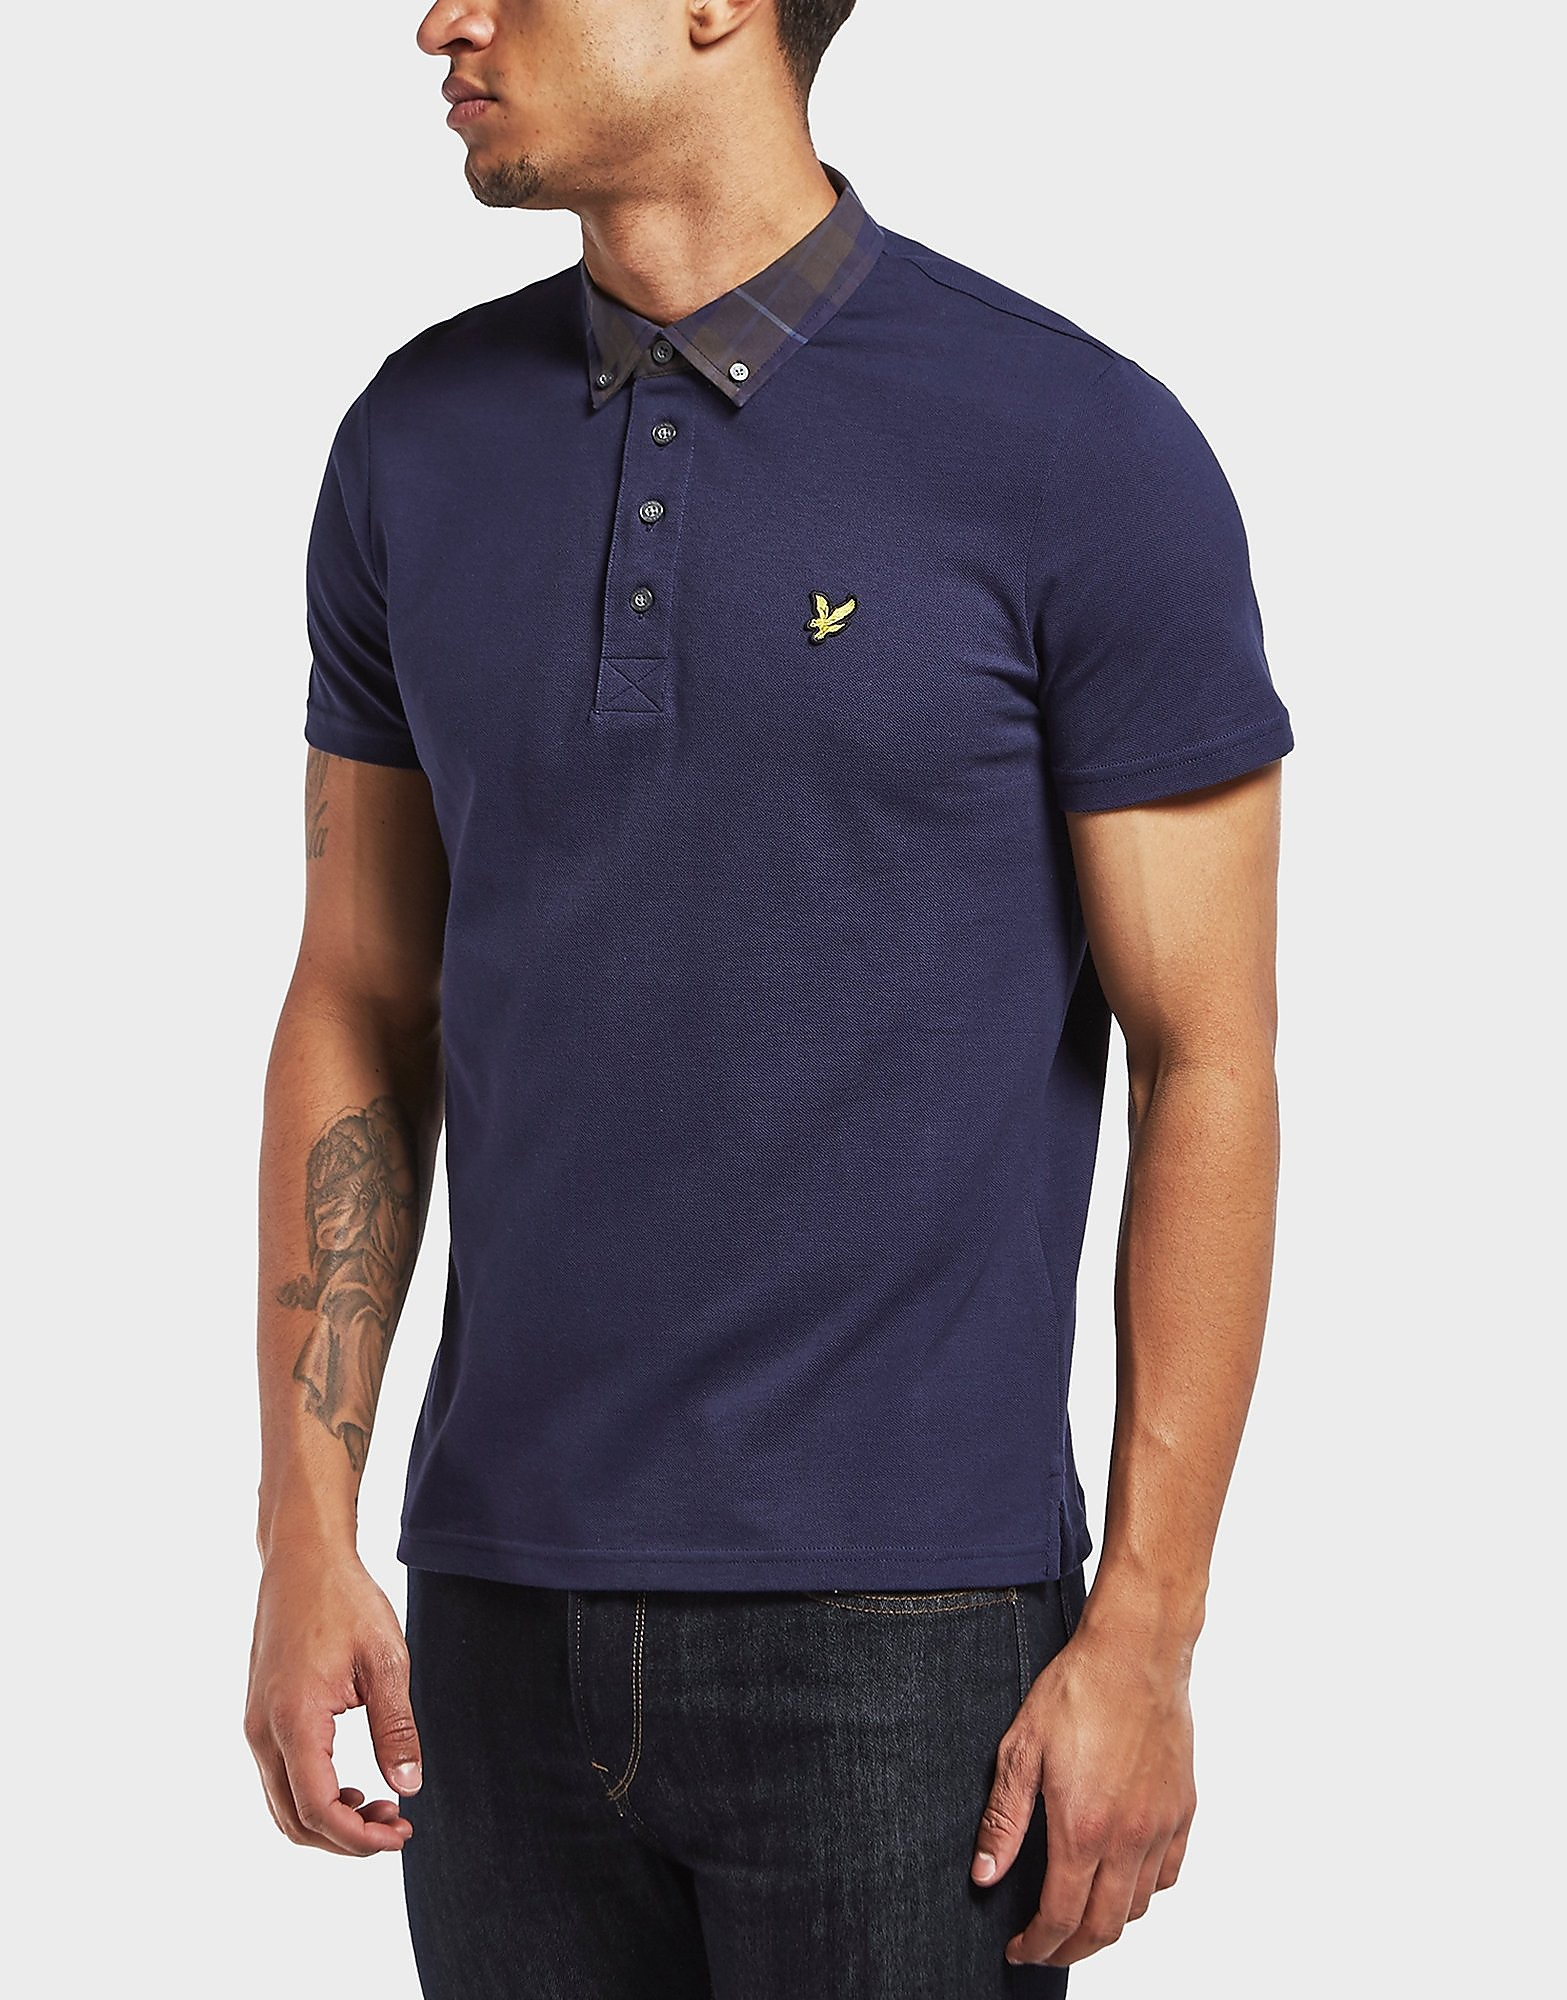 Lyle & Scott Check Collar Short Sleeve Polo Shirt